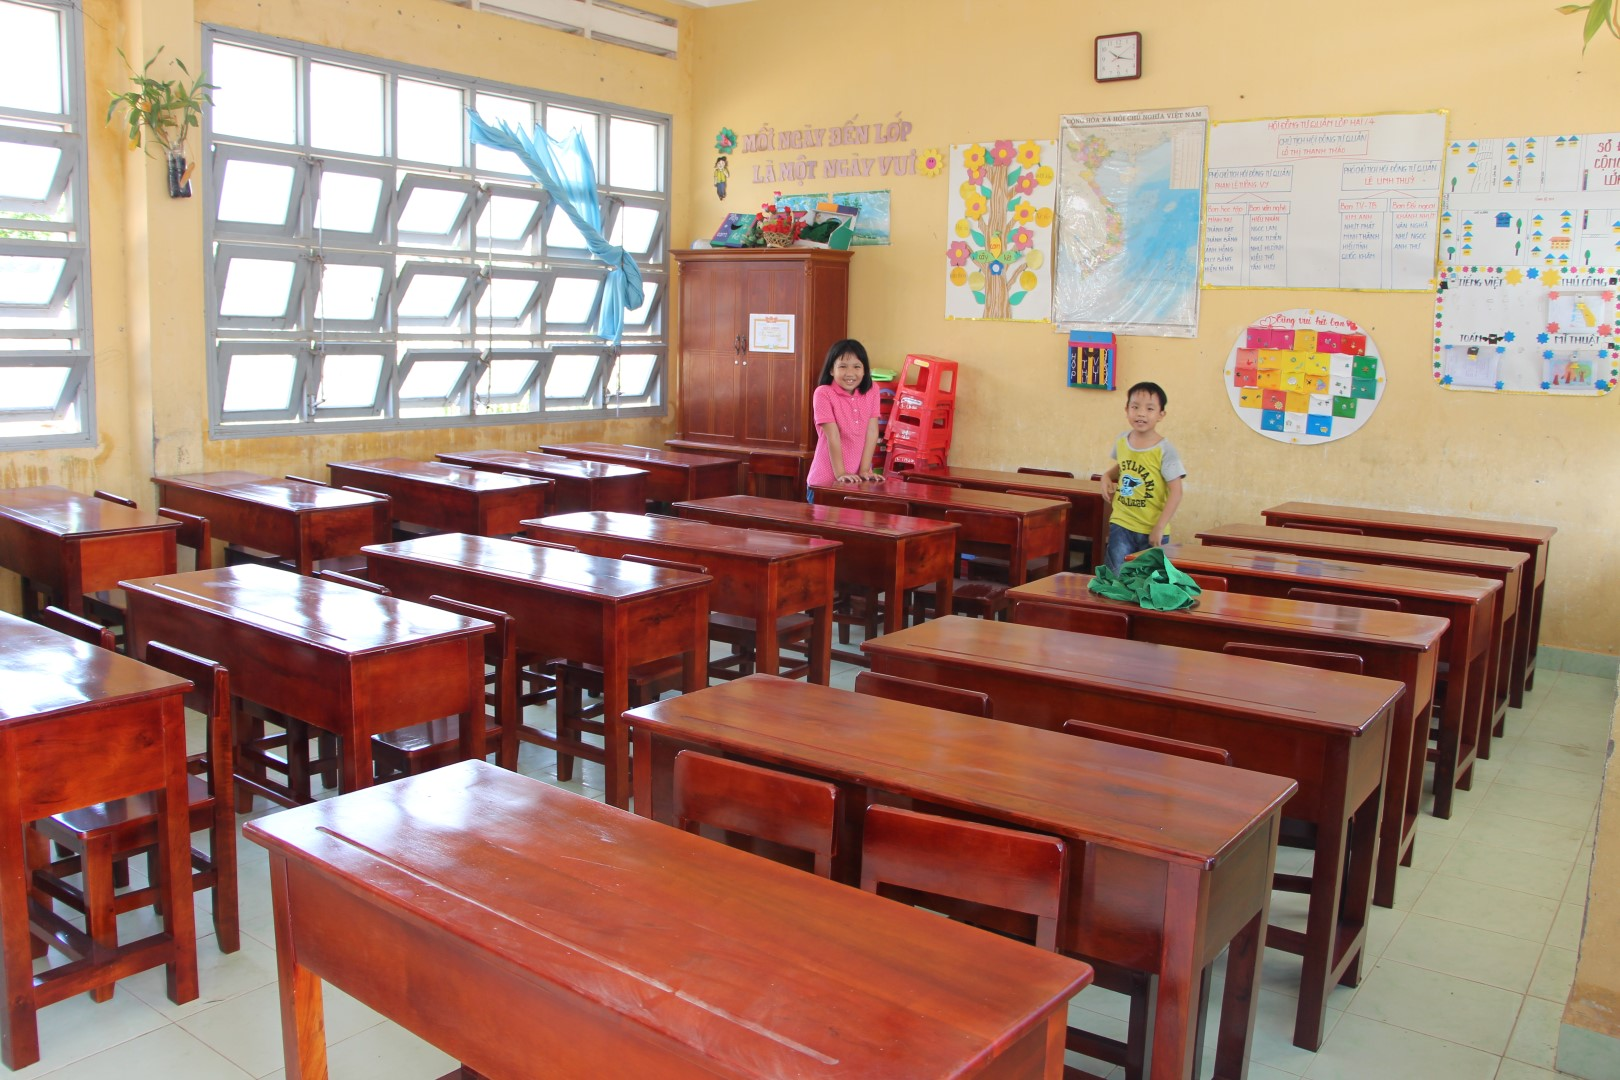 DEK Foundation helps setup school in Vietnam